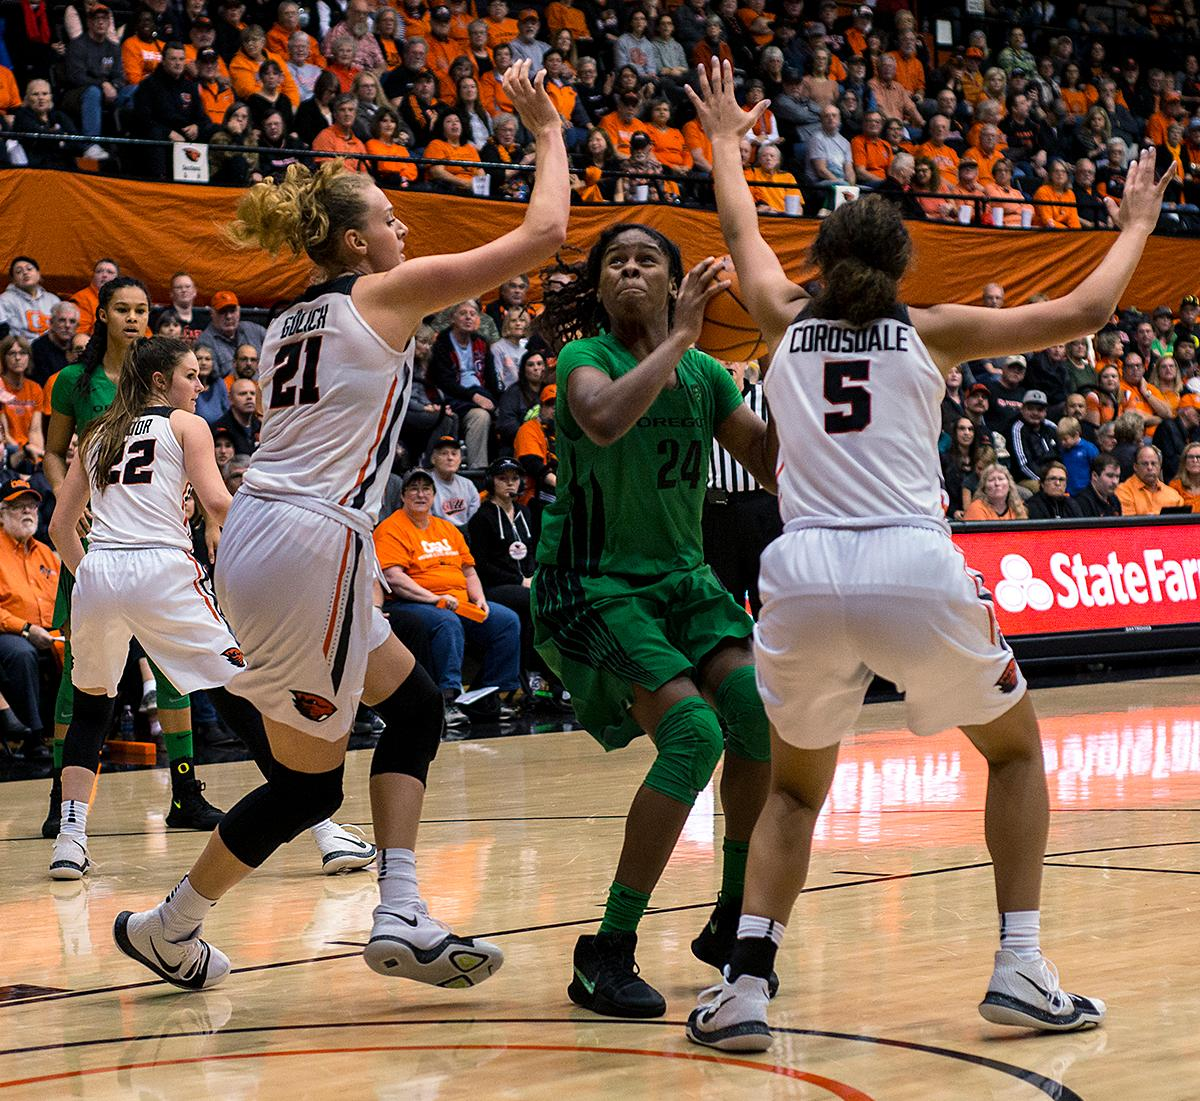 Oregon Ducks guard Ruthy Hebard (#24) tries to weave through Oregon State Beavers forwards Taya Corosdale (#5) and Marie Gülich (#21) as they defend their basket.The Oregon Ducks were defeated by the Oregon State Beavers 85-79 on Friday night in Corvallis. Sabrina Ionescu scored 35 points and Ruthy Hebard added 24. The Ducks will face the Beavers this Sunday at 5 p.m. at Matthew Knight Arena. Photo by Abigail Winn, Oregon News Lab